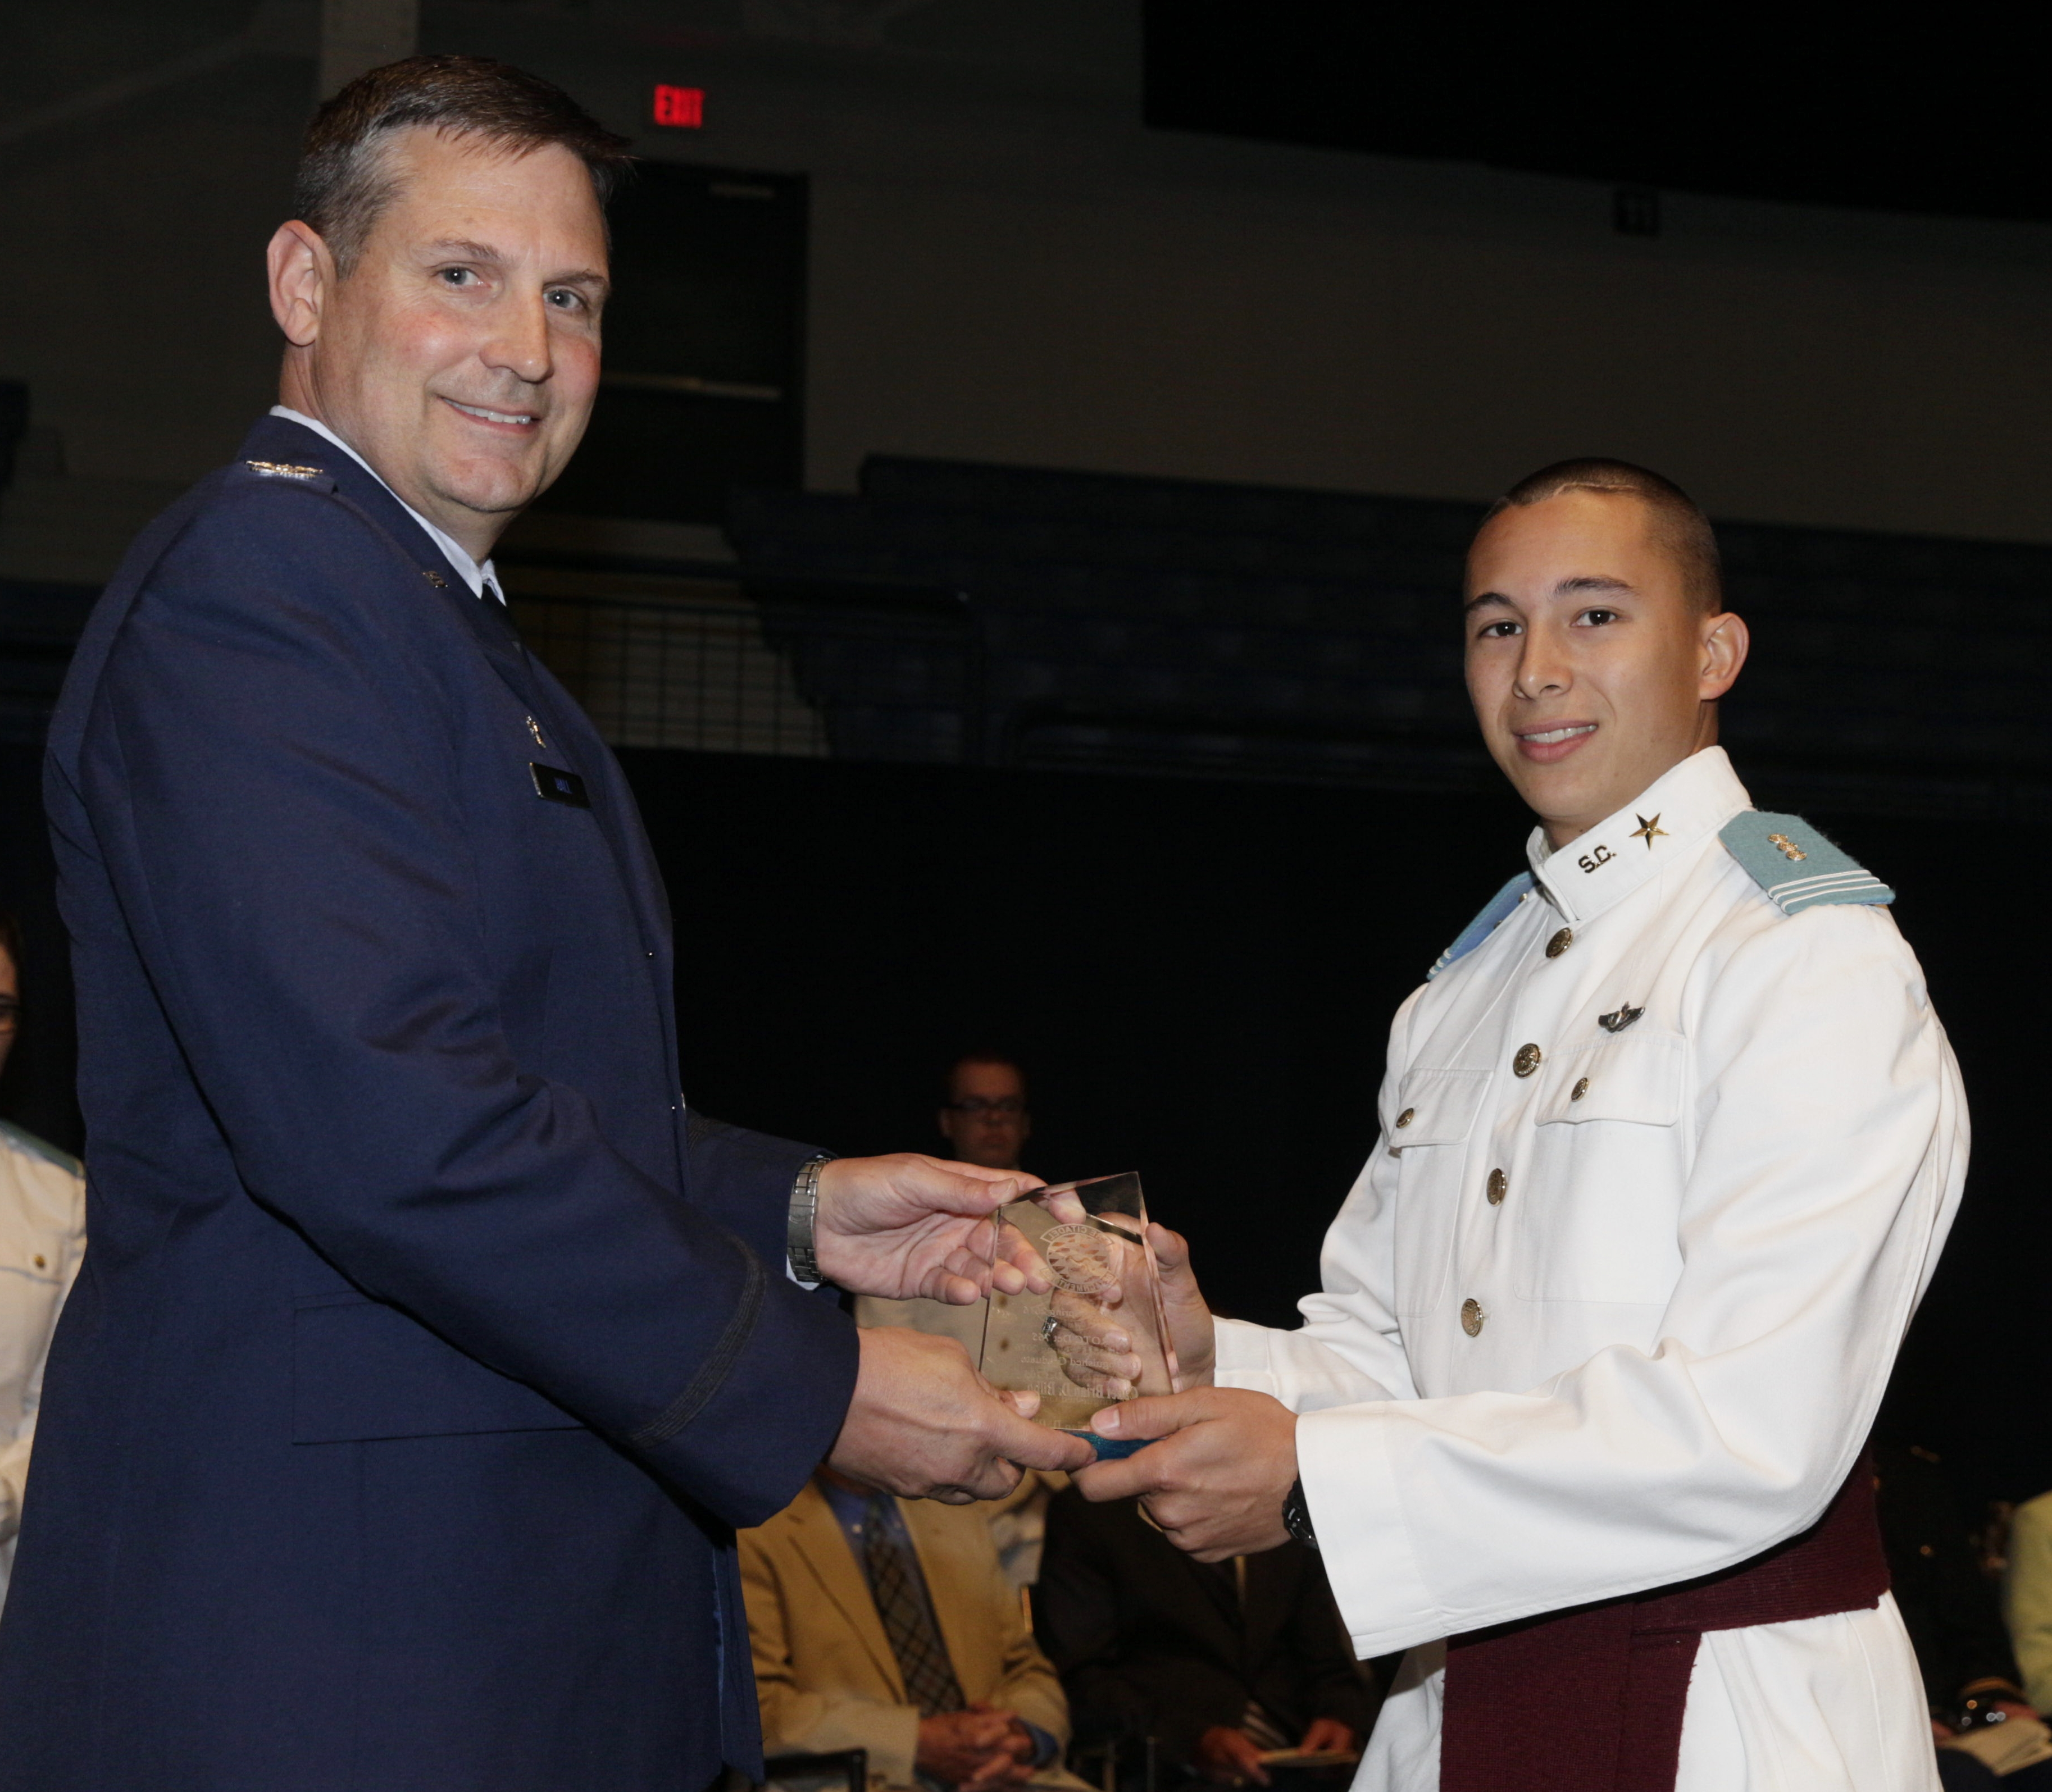 Lt. Brian Bilbo received Air Force ROTC award from Col. Clay Hall